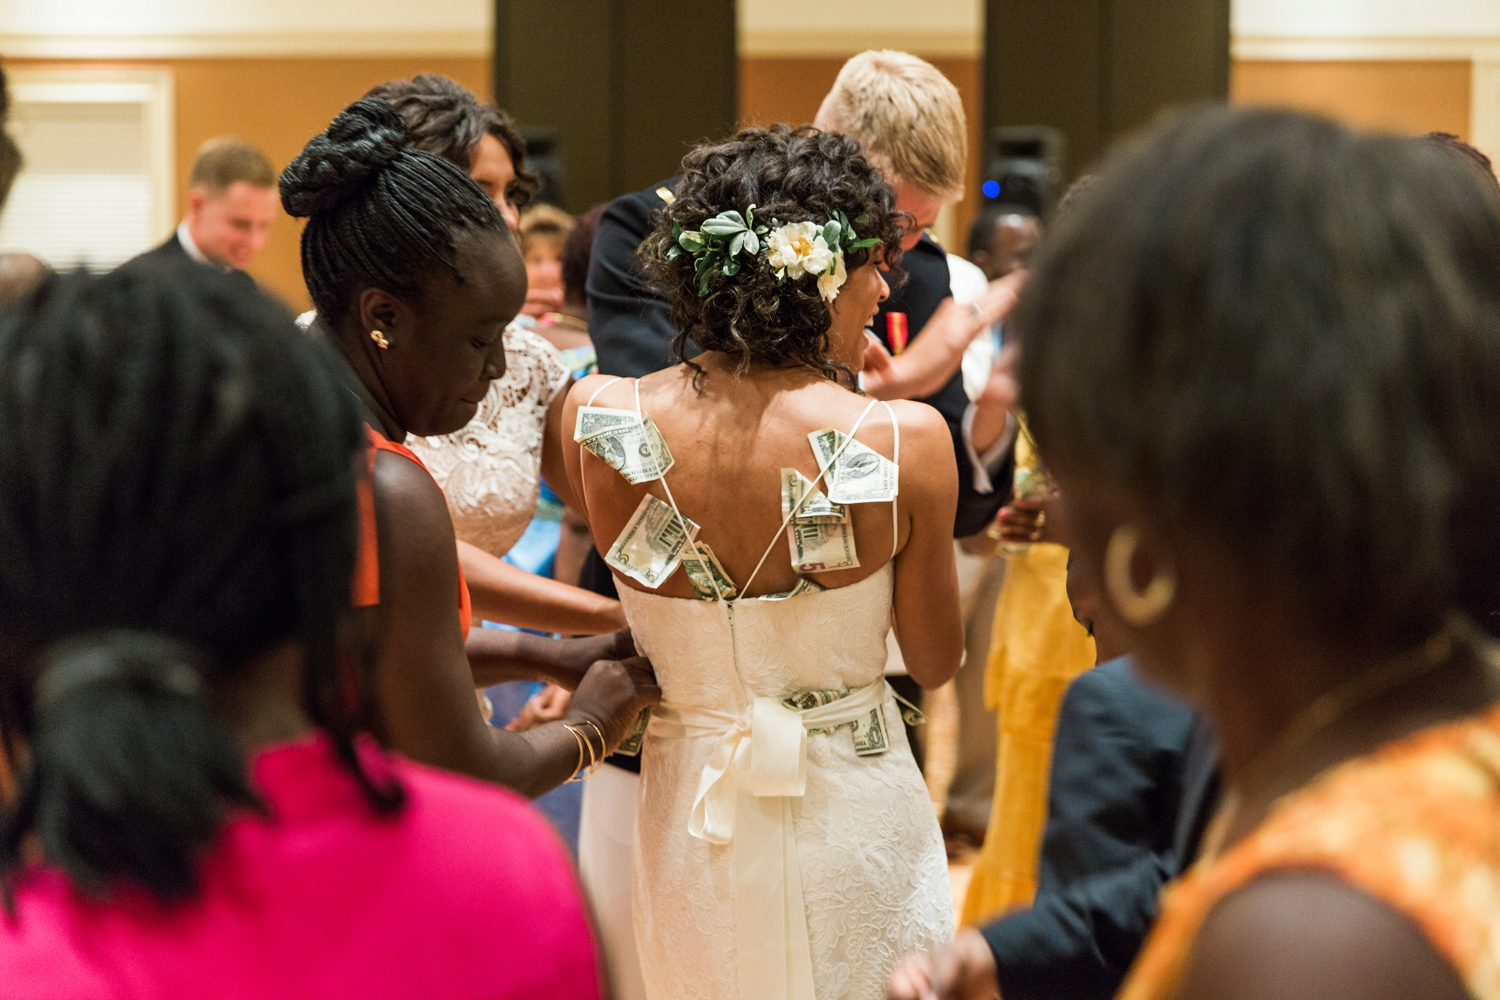 Wedding-at-The-Savannah-Center-West-Chester-Ohio-Photography-Chloe-Luka-Photography_7569.jpg